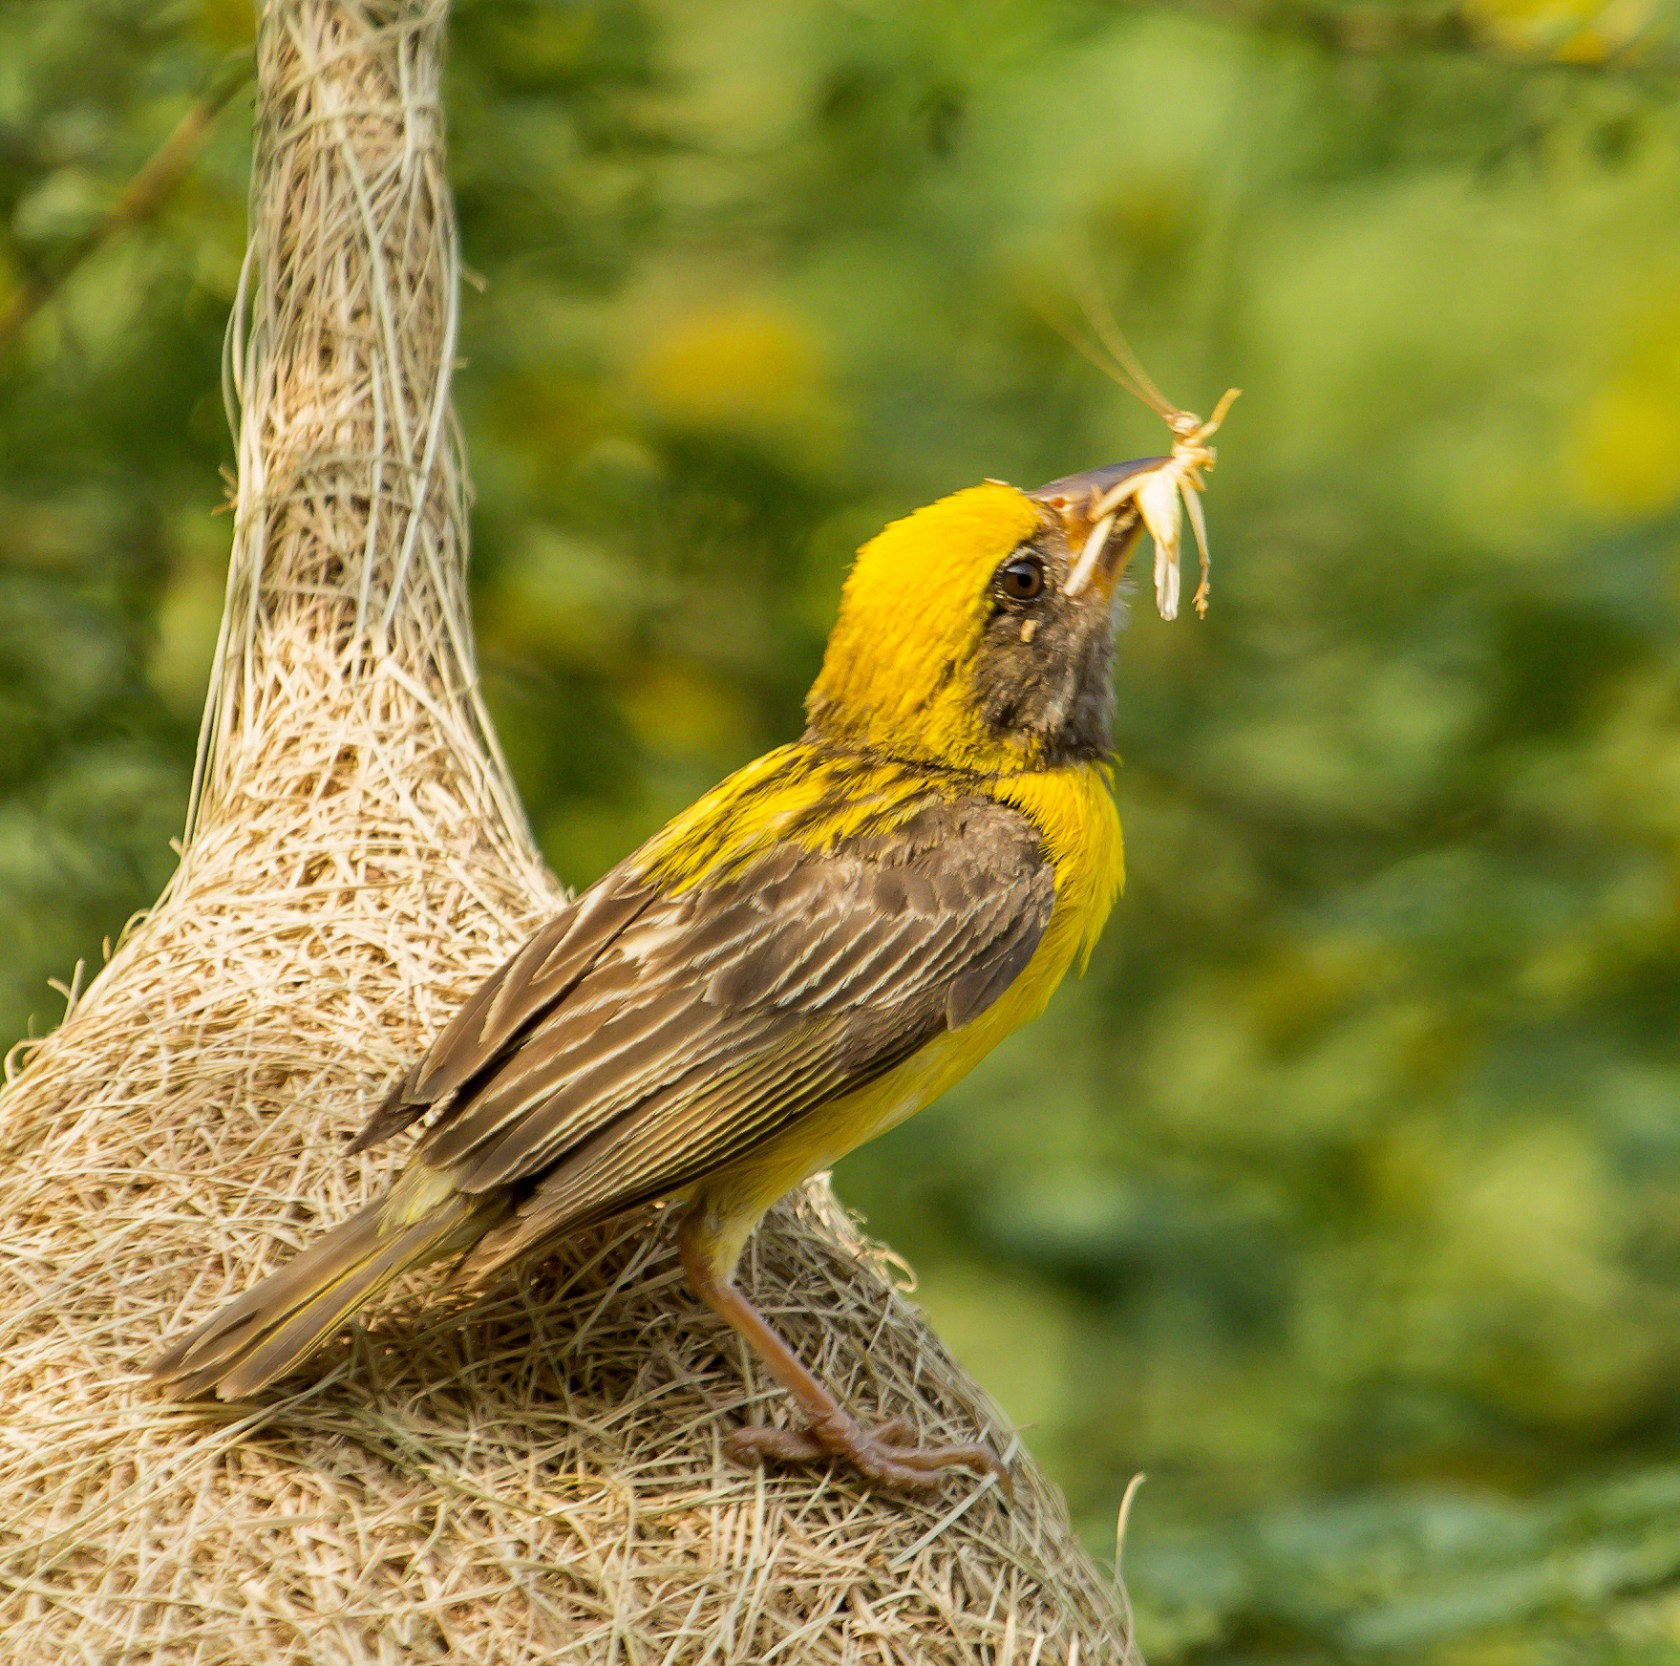 Baya-weaver-with-insect-prey-picture-gallery-from-bird-and-w-wallpaper-wp5803846